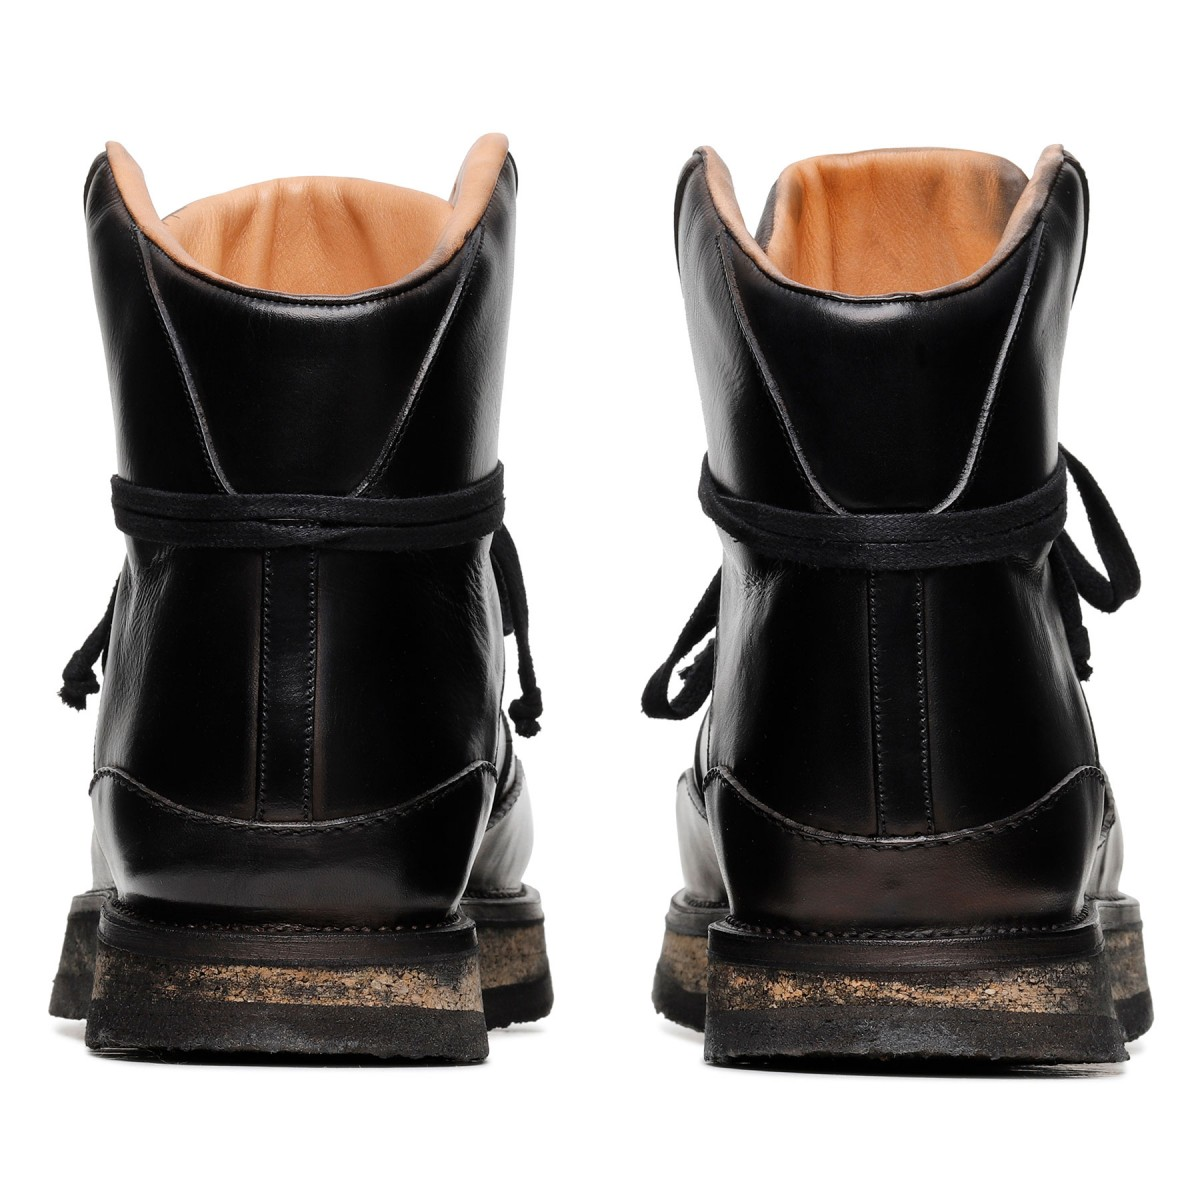 Tokyo black leather ankle boots